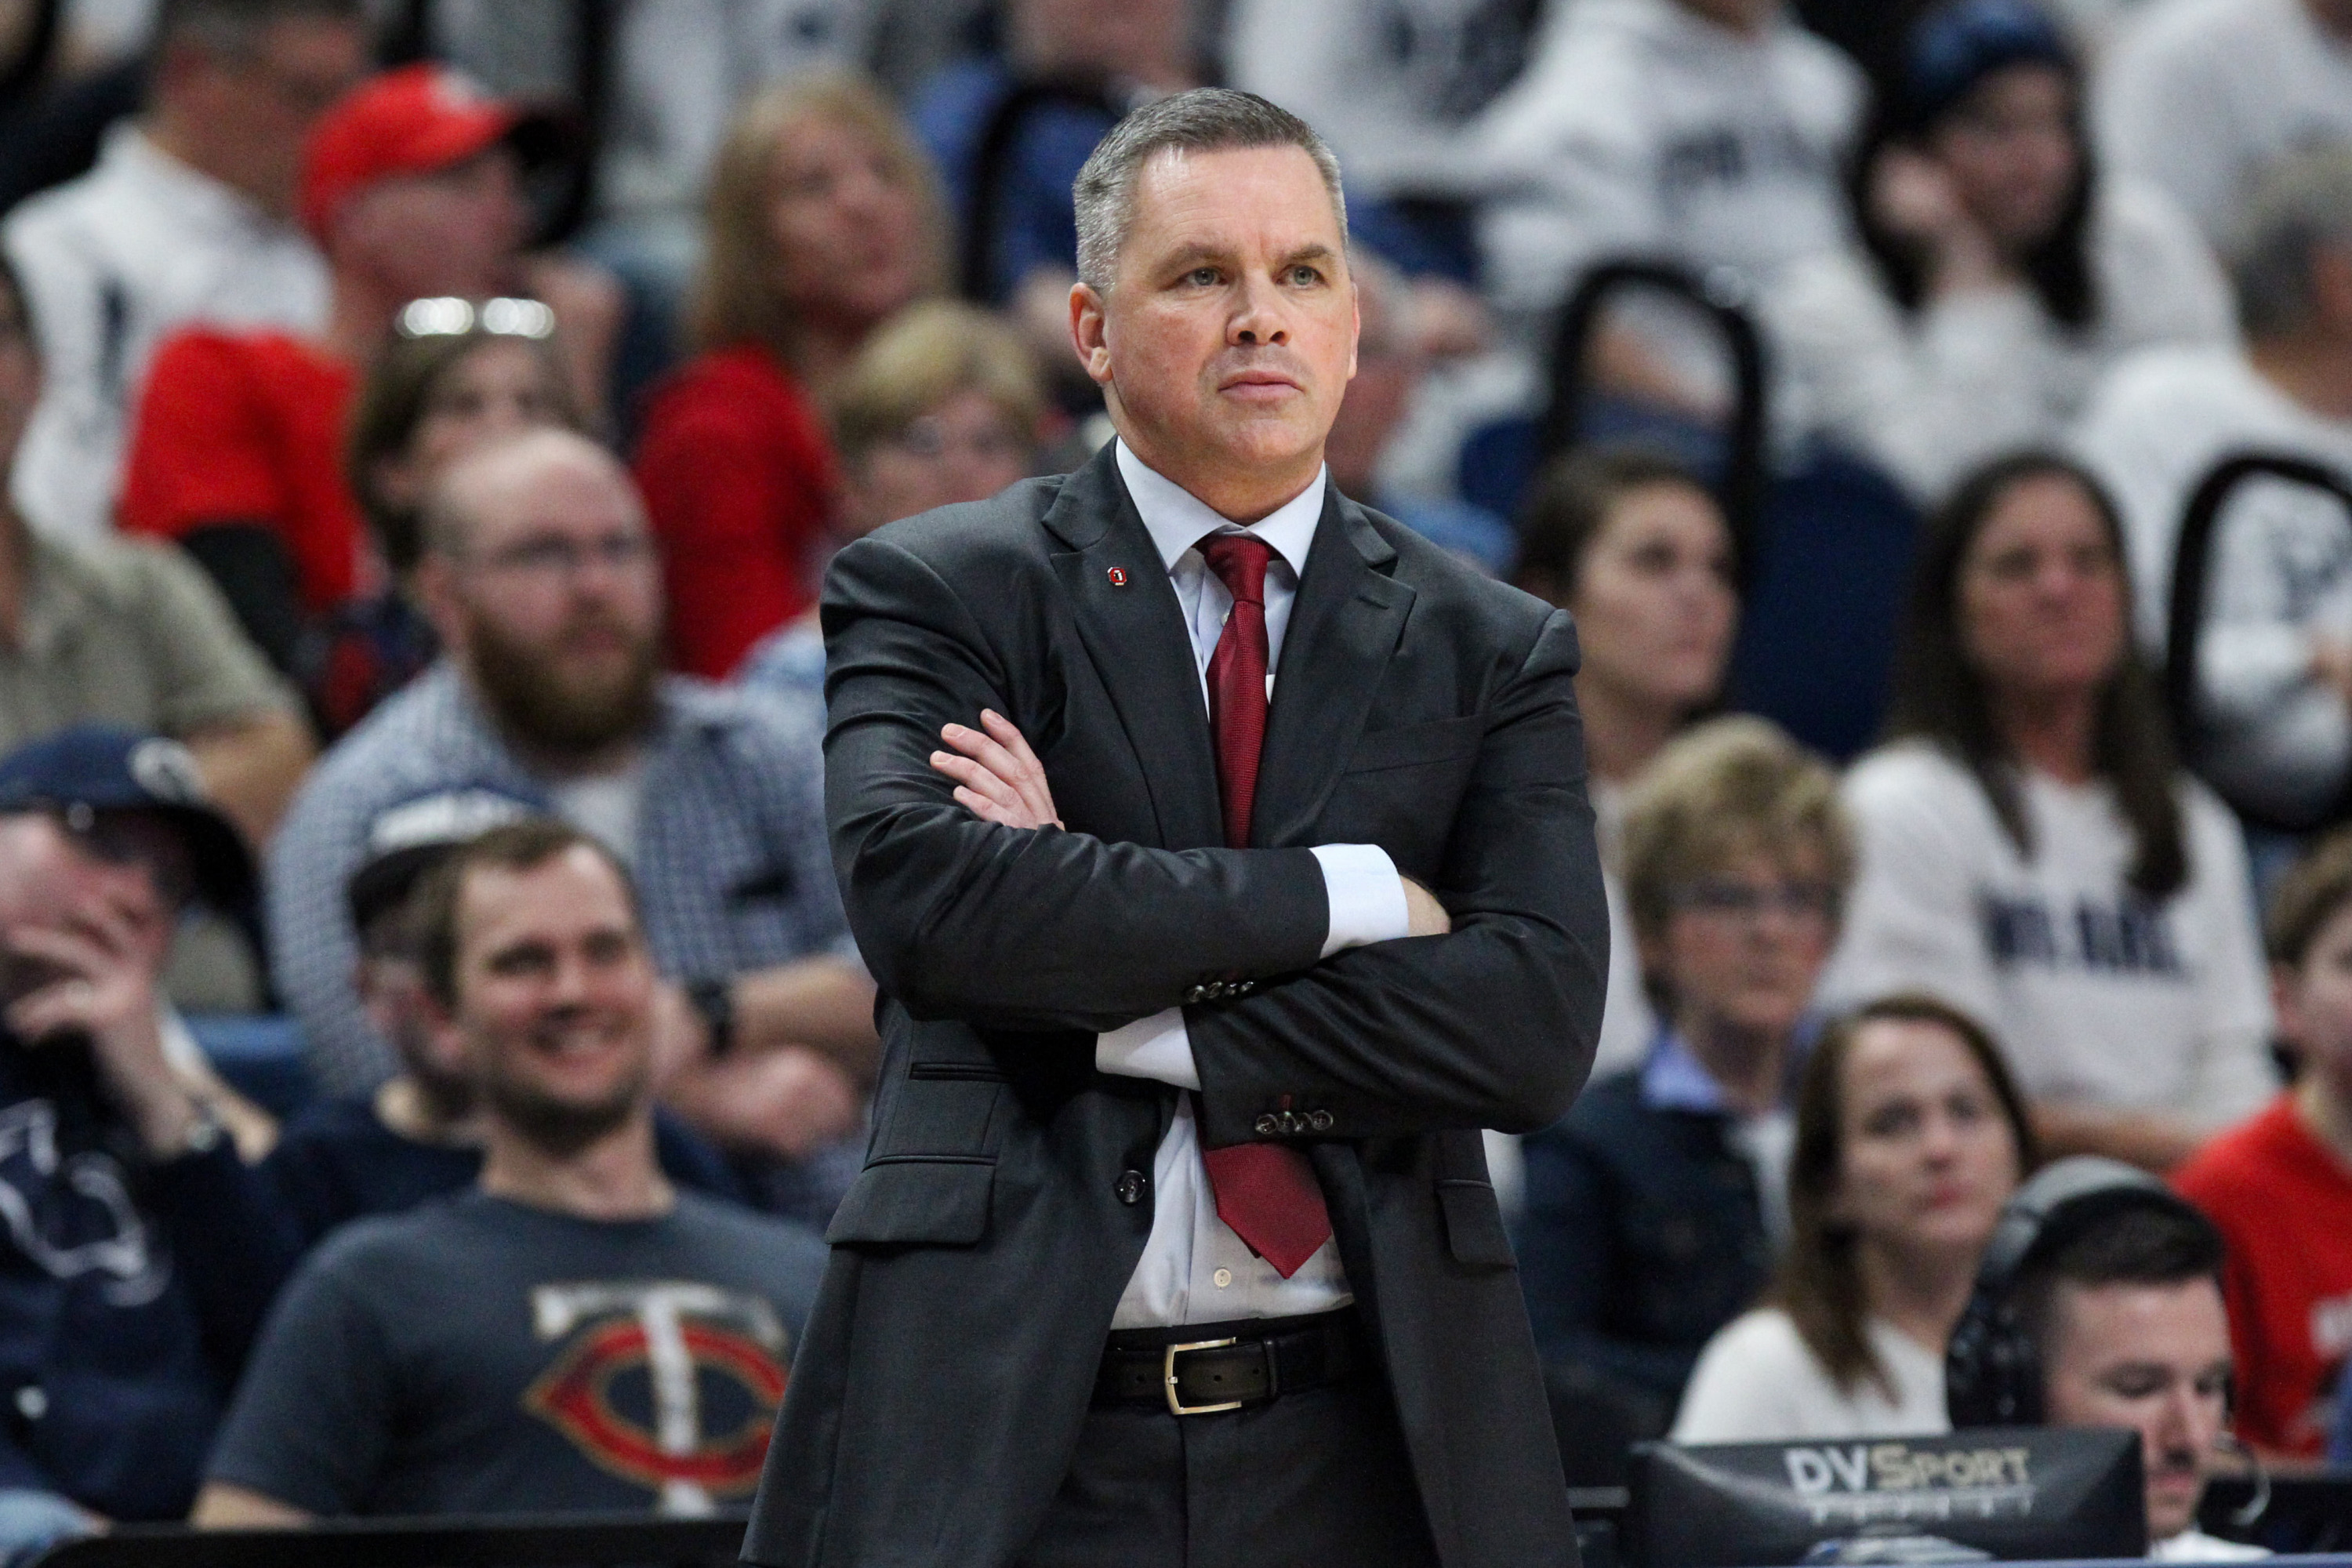 Feb 15, 2018; University Park, PA, USA; Ohio State Buckeyes head coach Chris Holtmann looks on from the bench during the first half against the Penn State Nittany Lions at Bryce Jordan Center. Penn State defeated Ohio State 79-56. Mandatory Credit: Matthew O'Haren-USA TODAY Sports